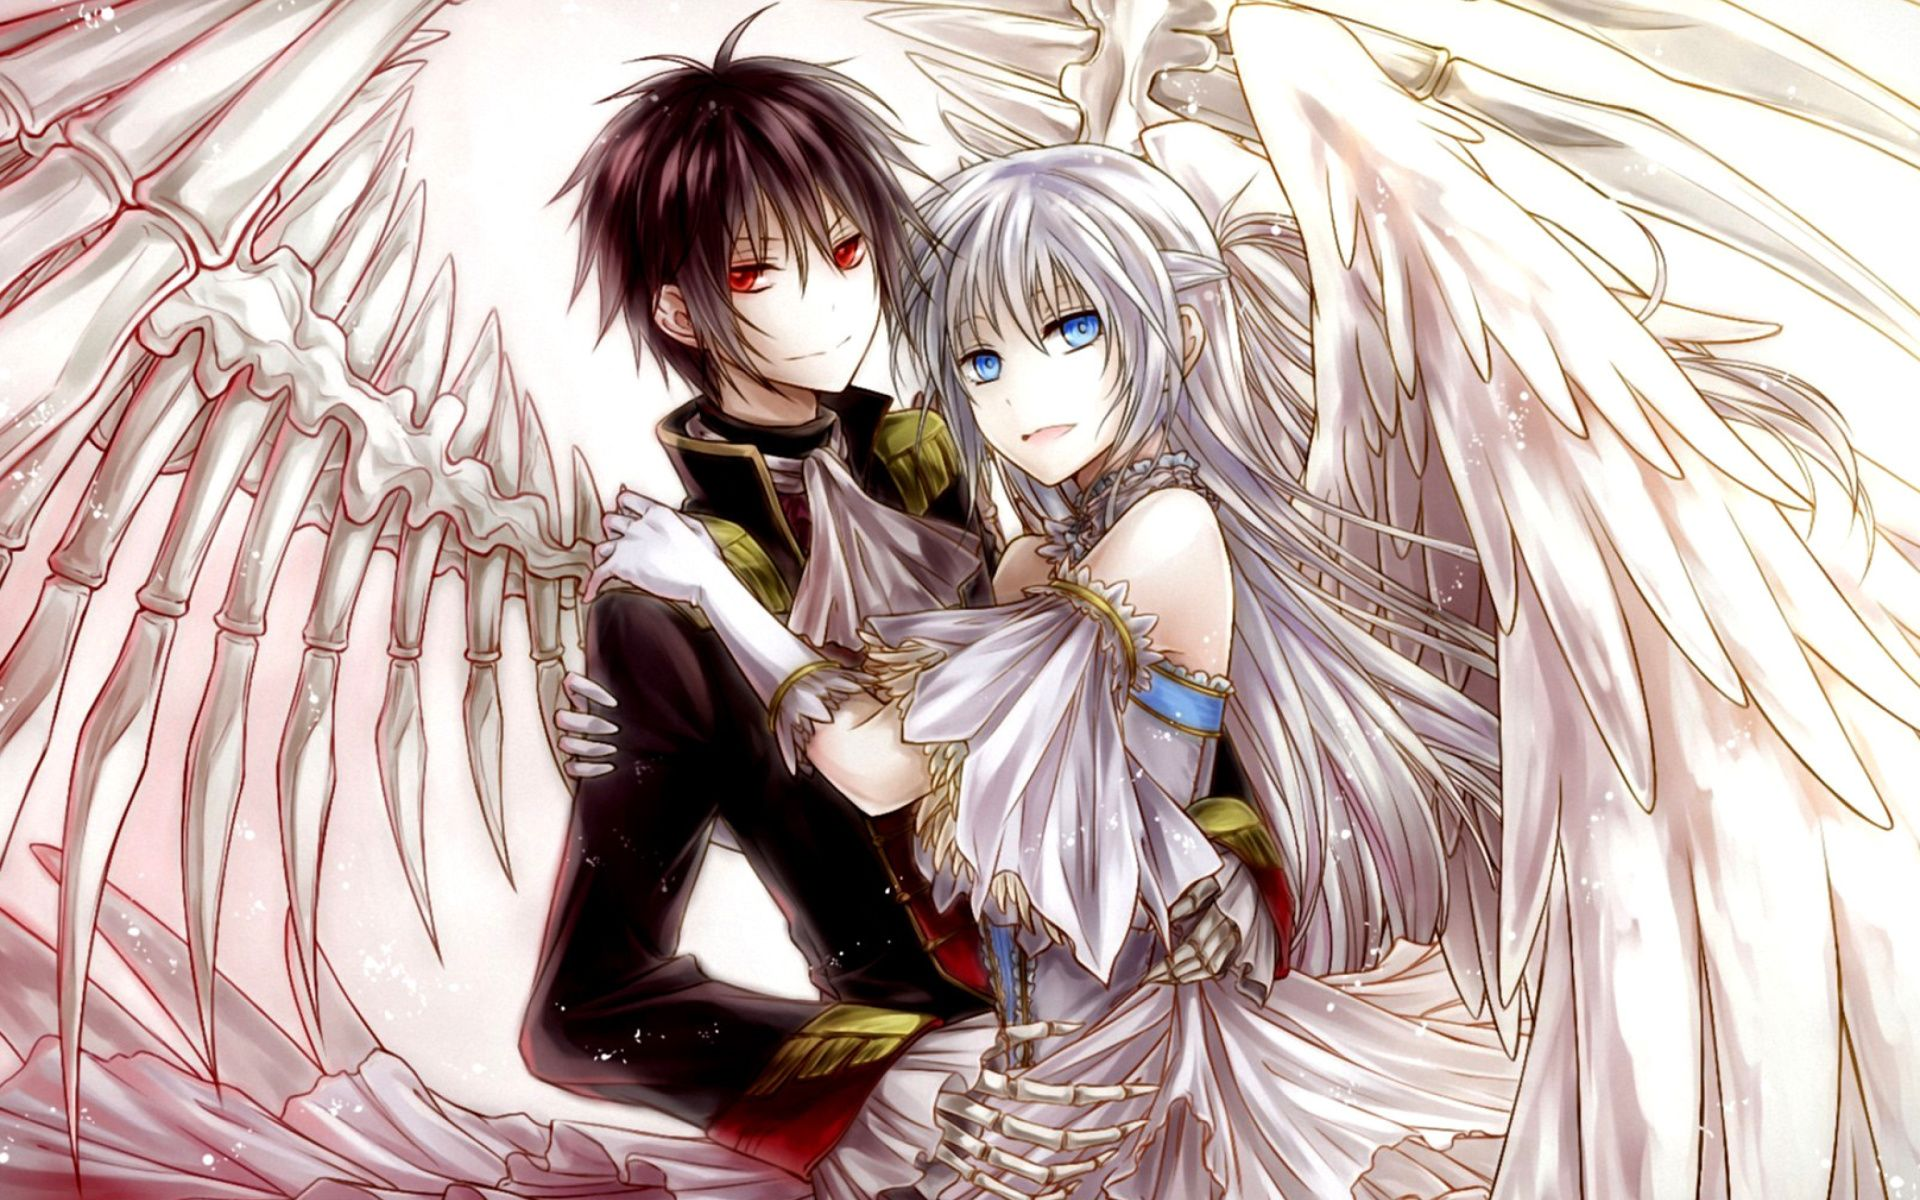 Beautiful anime couple wallpaper hd images one hd - High quality anime pictures ...